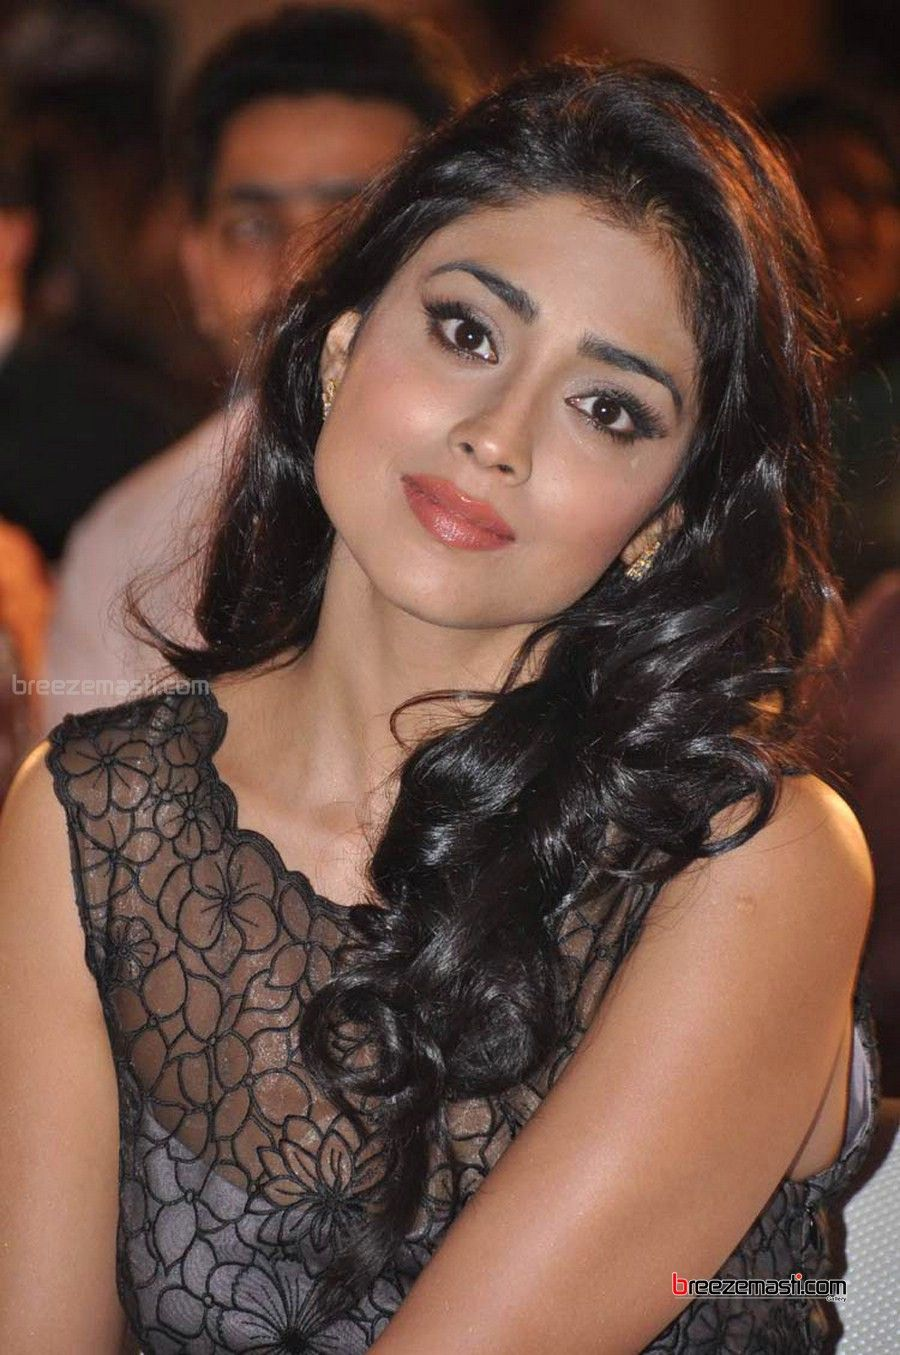 shriya saran date of birth